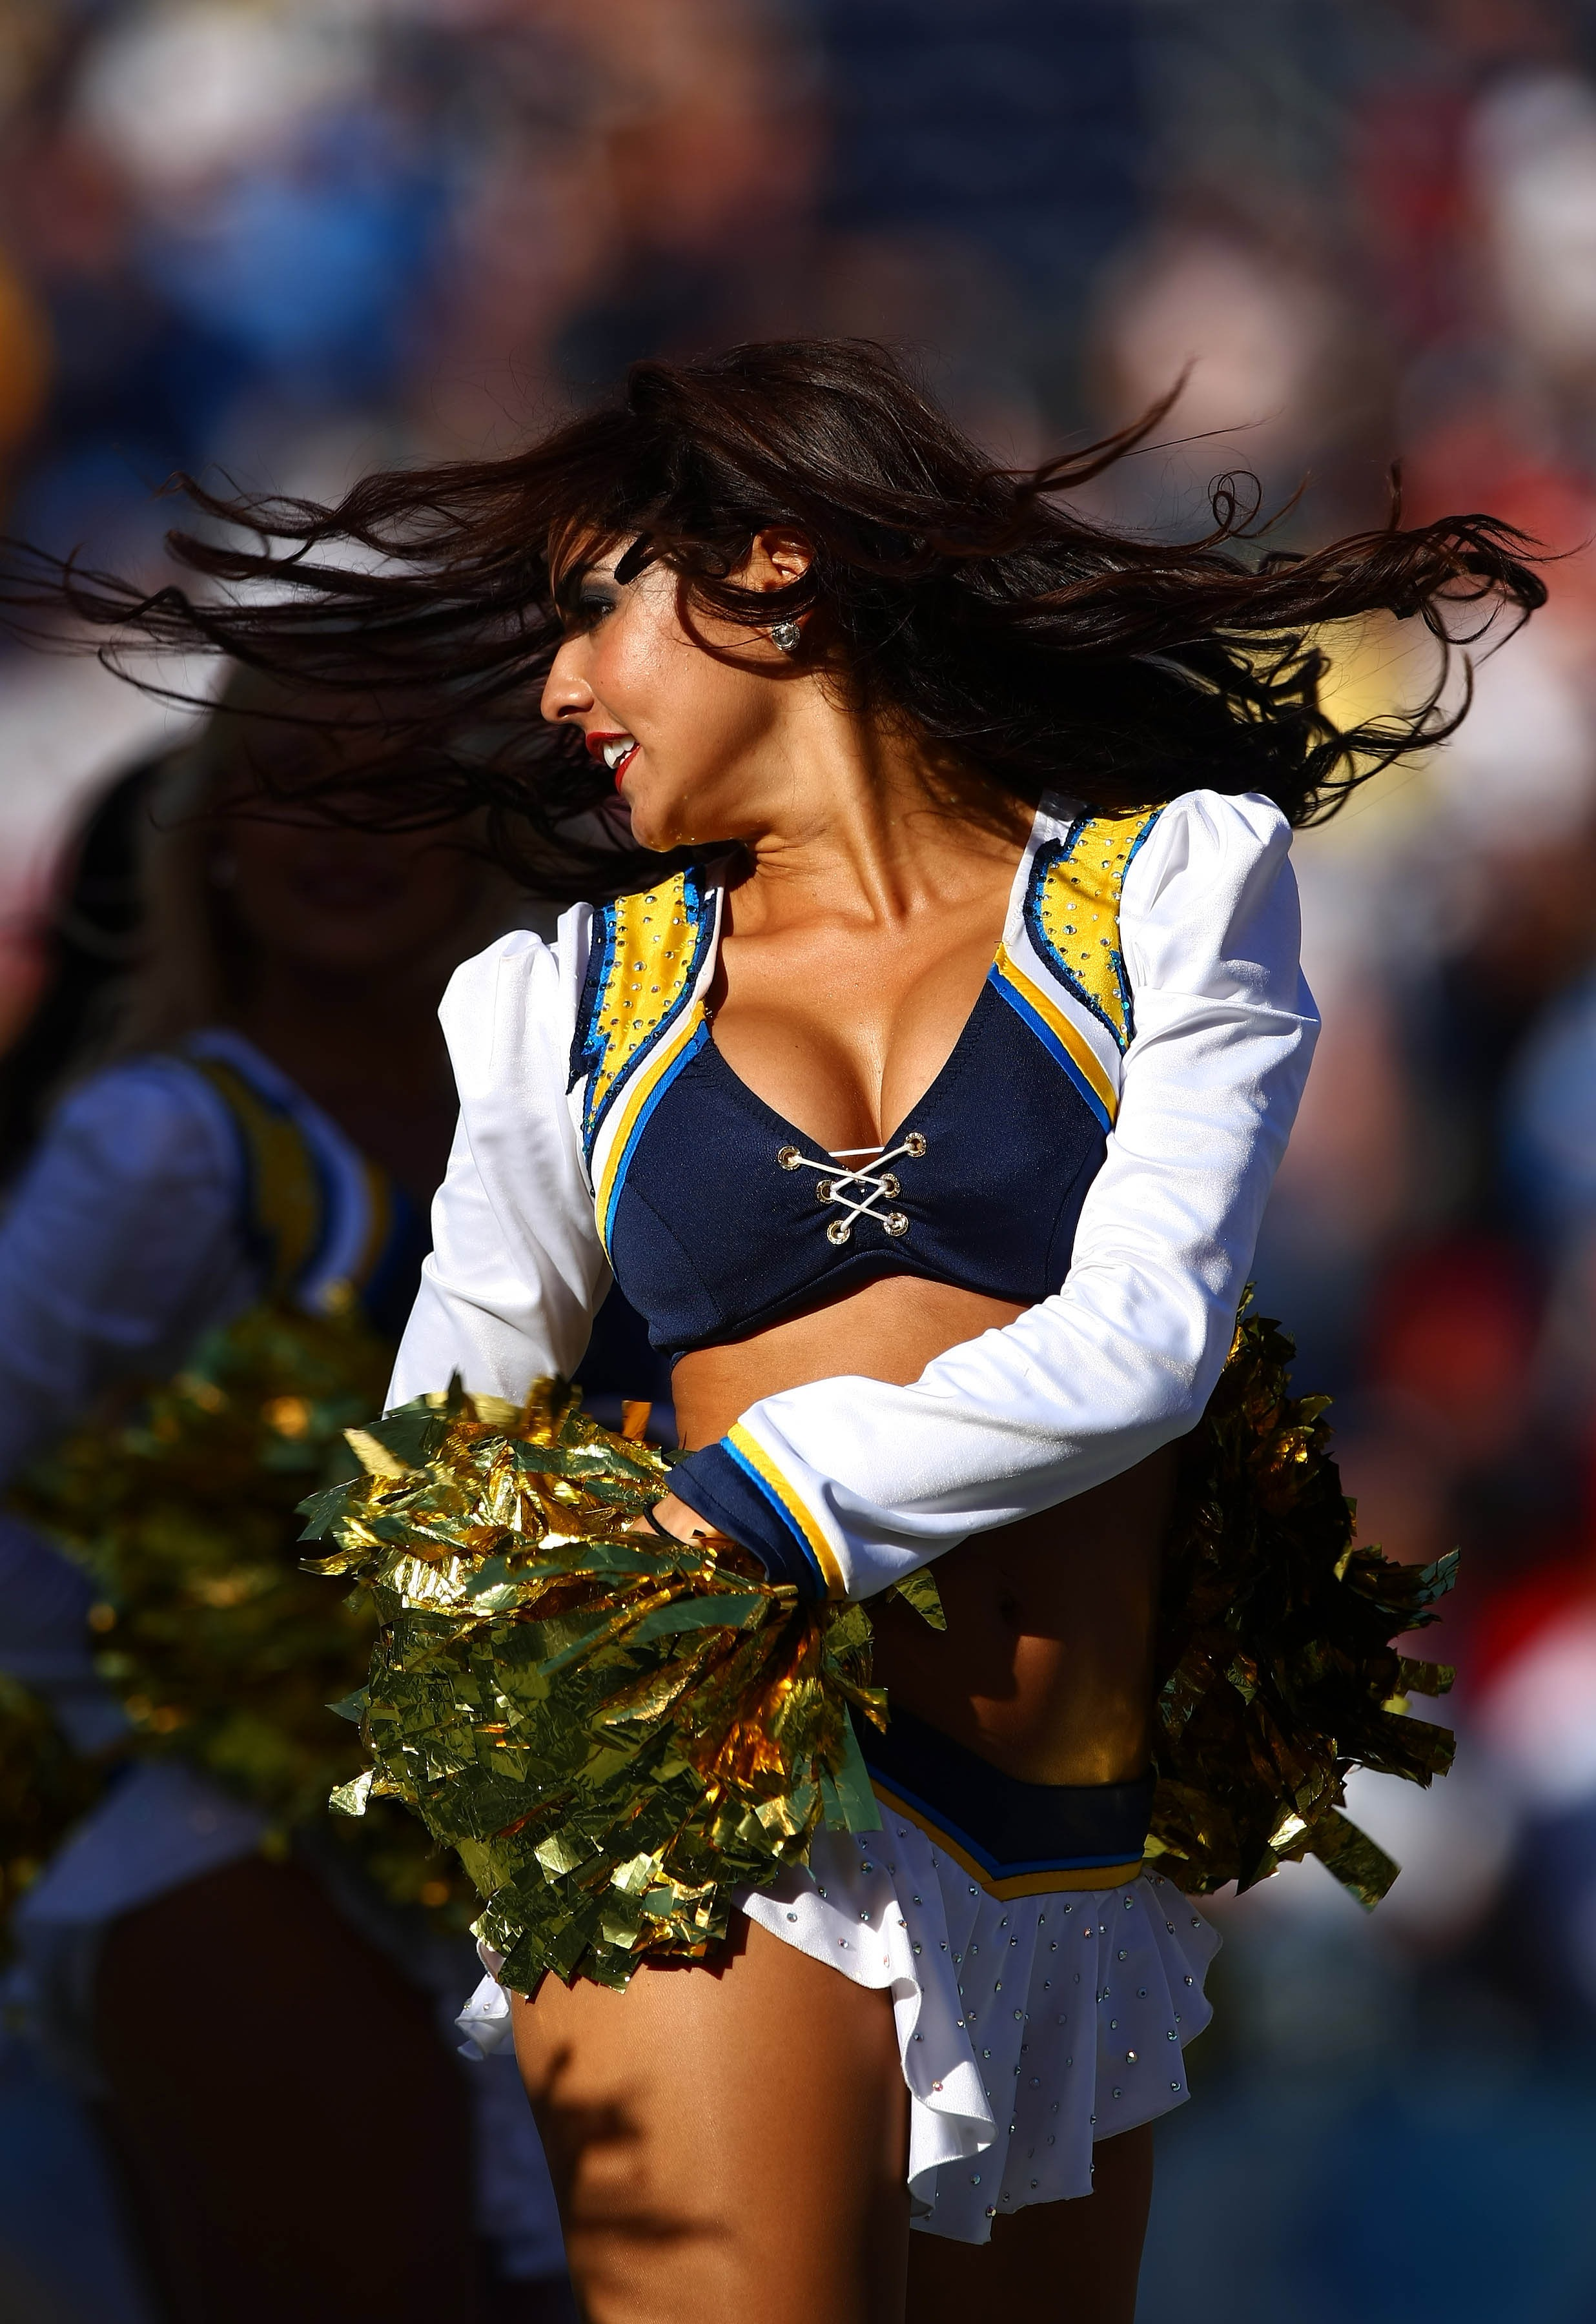 SAN DIEGO, UNITED STATES - SEPTEMBER 30: A Cheerleader from the San Diego Chargers performs a dance routine during their NFL game on September 30, 2007 at Qualcomm Stadium in San Diego, California.  (Photo by Donald Miralle/Getty Images)